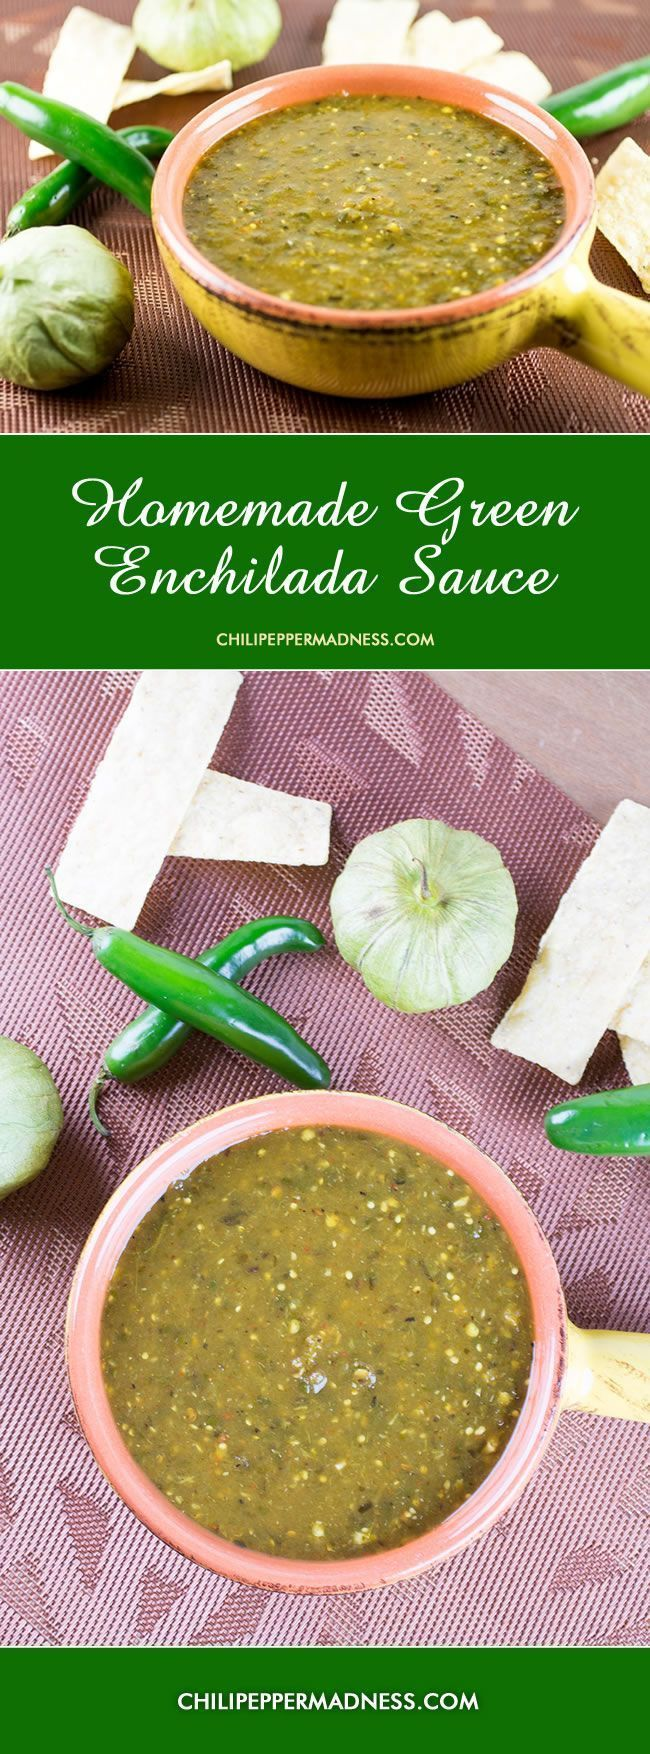 Homemade Green Enchilada Sauce with Roasted Tomatillos from ChiliPepperMadness.com #enchiladas #sauce #enchiladasauce #tomatillos #mexican #mexicansauce